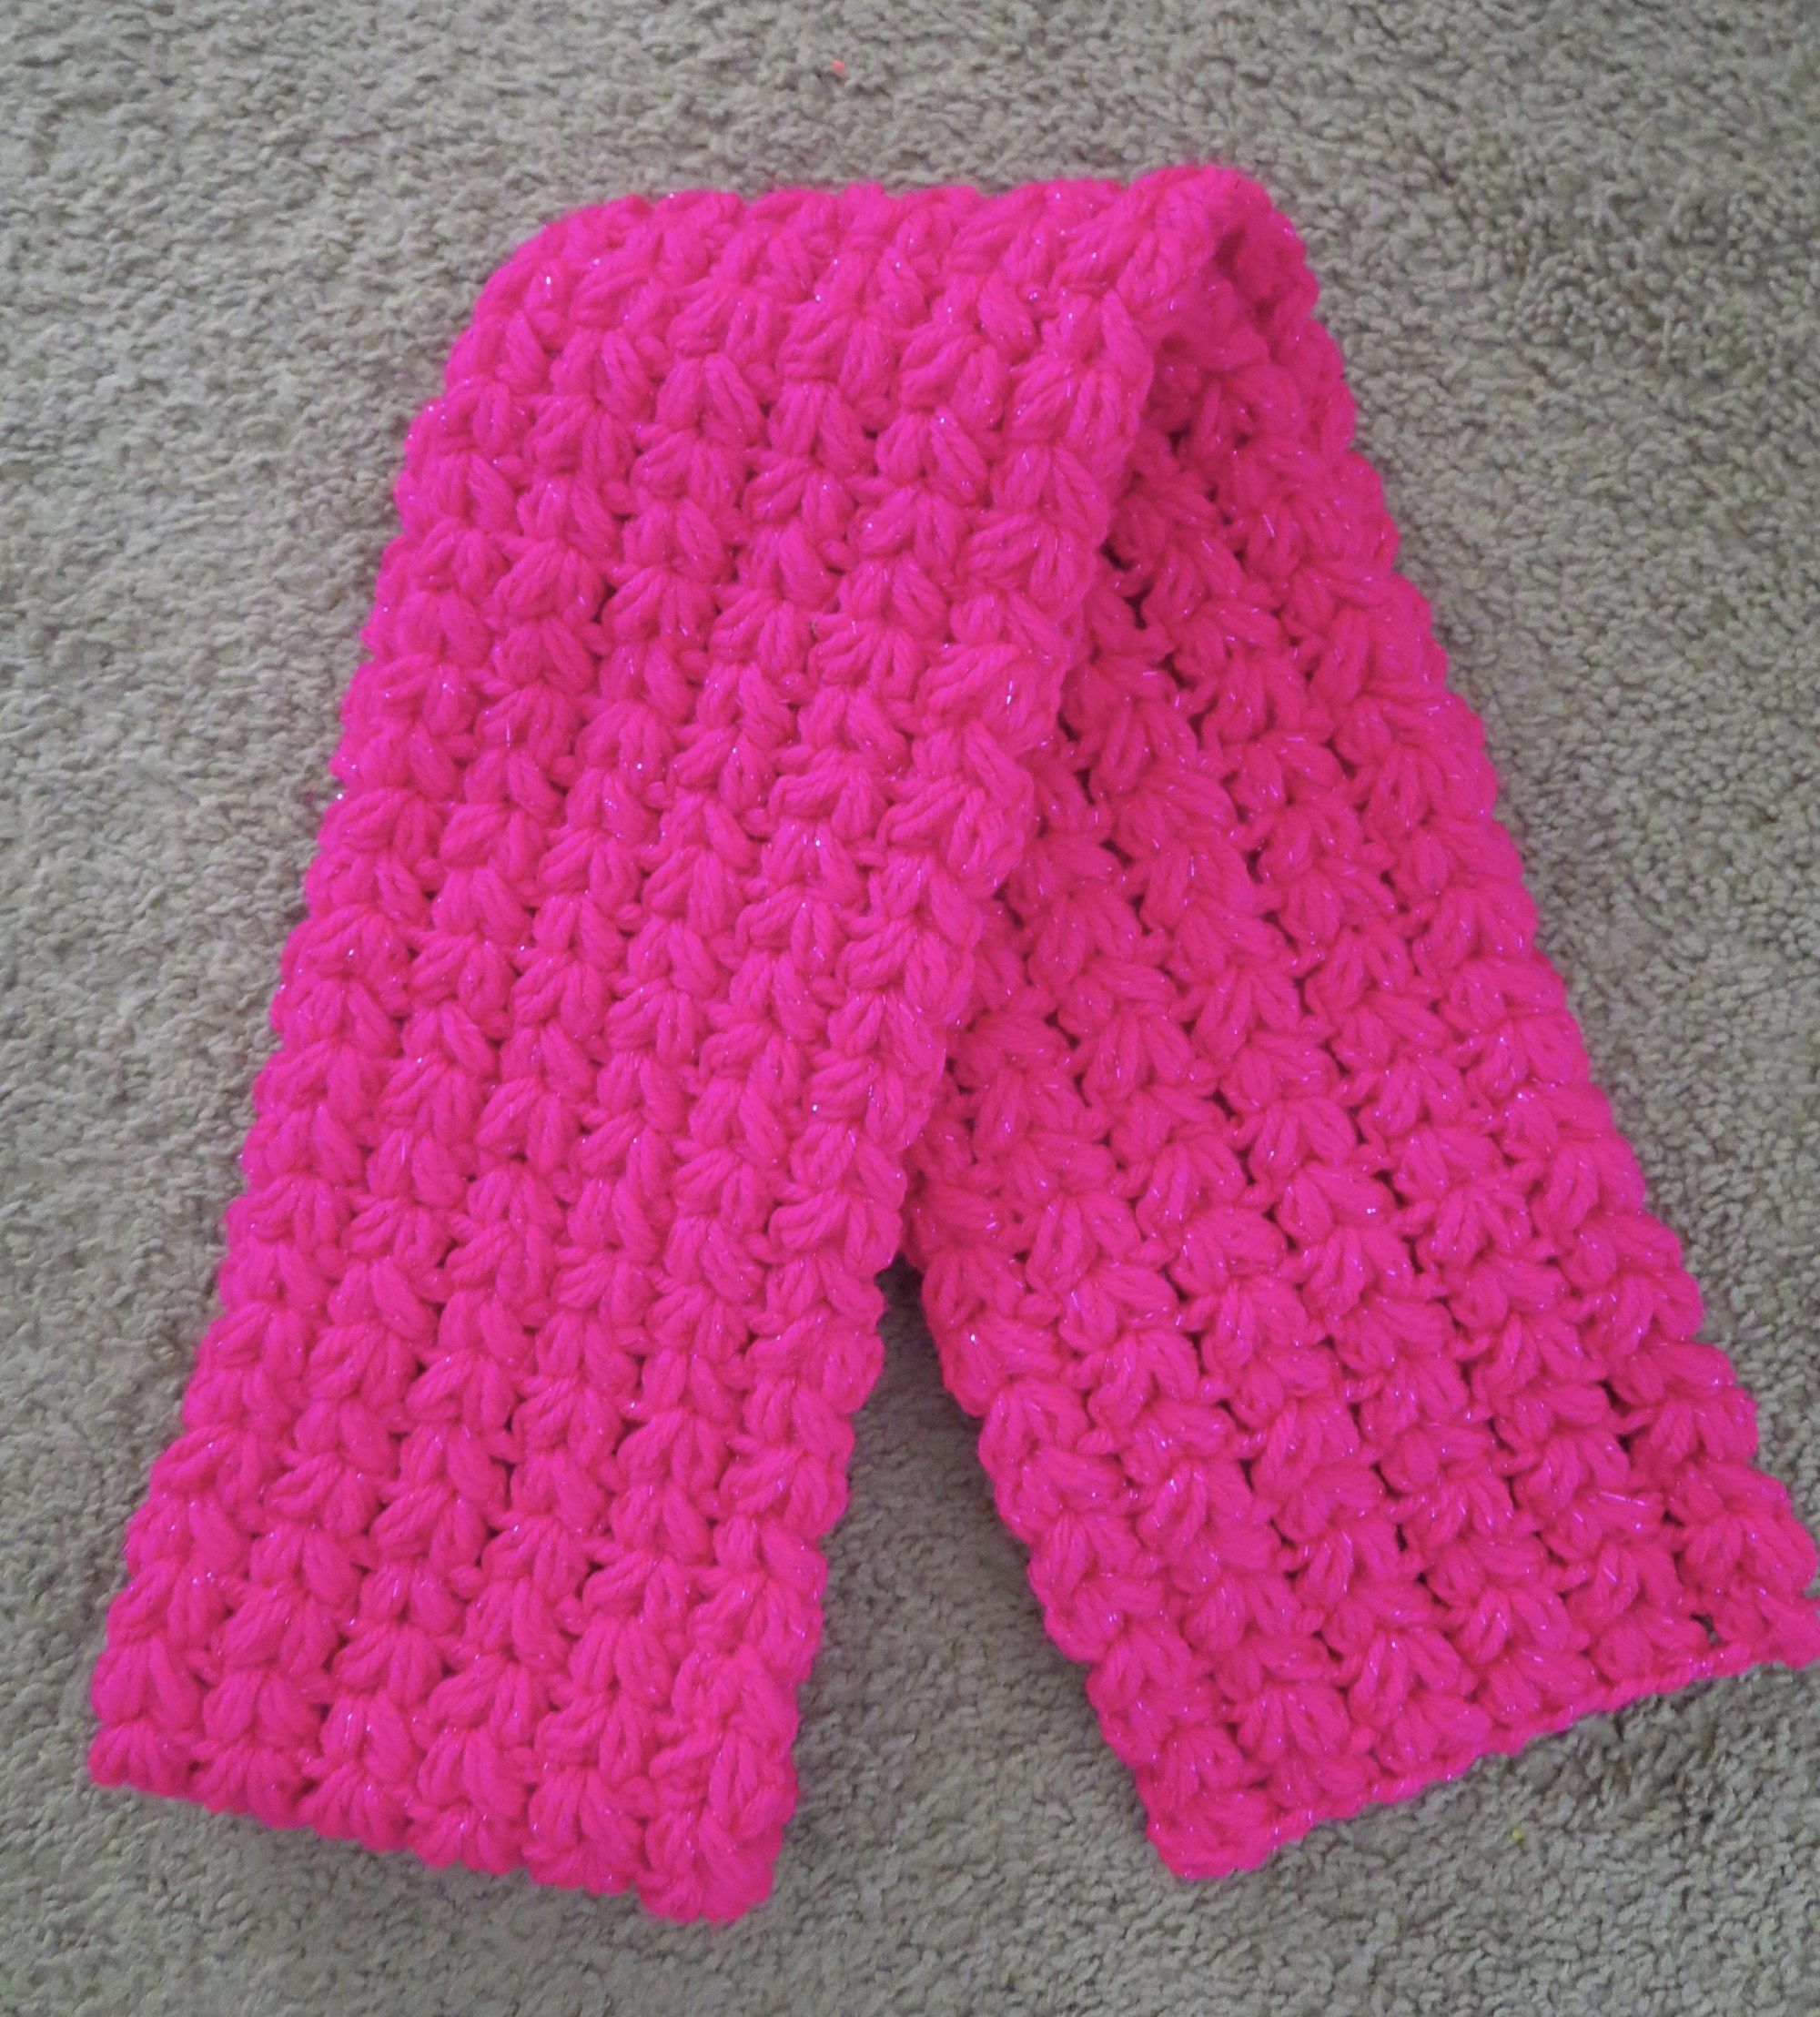 Crochet Puff Scarf Materials: – Any medium worsted yarn. I used Red ...